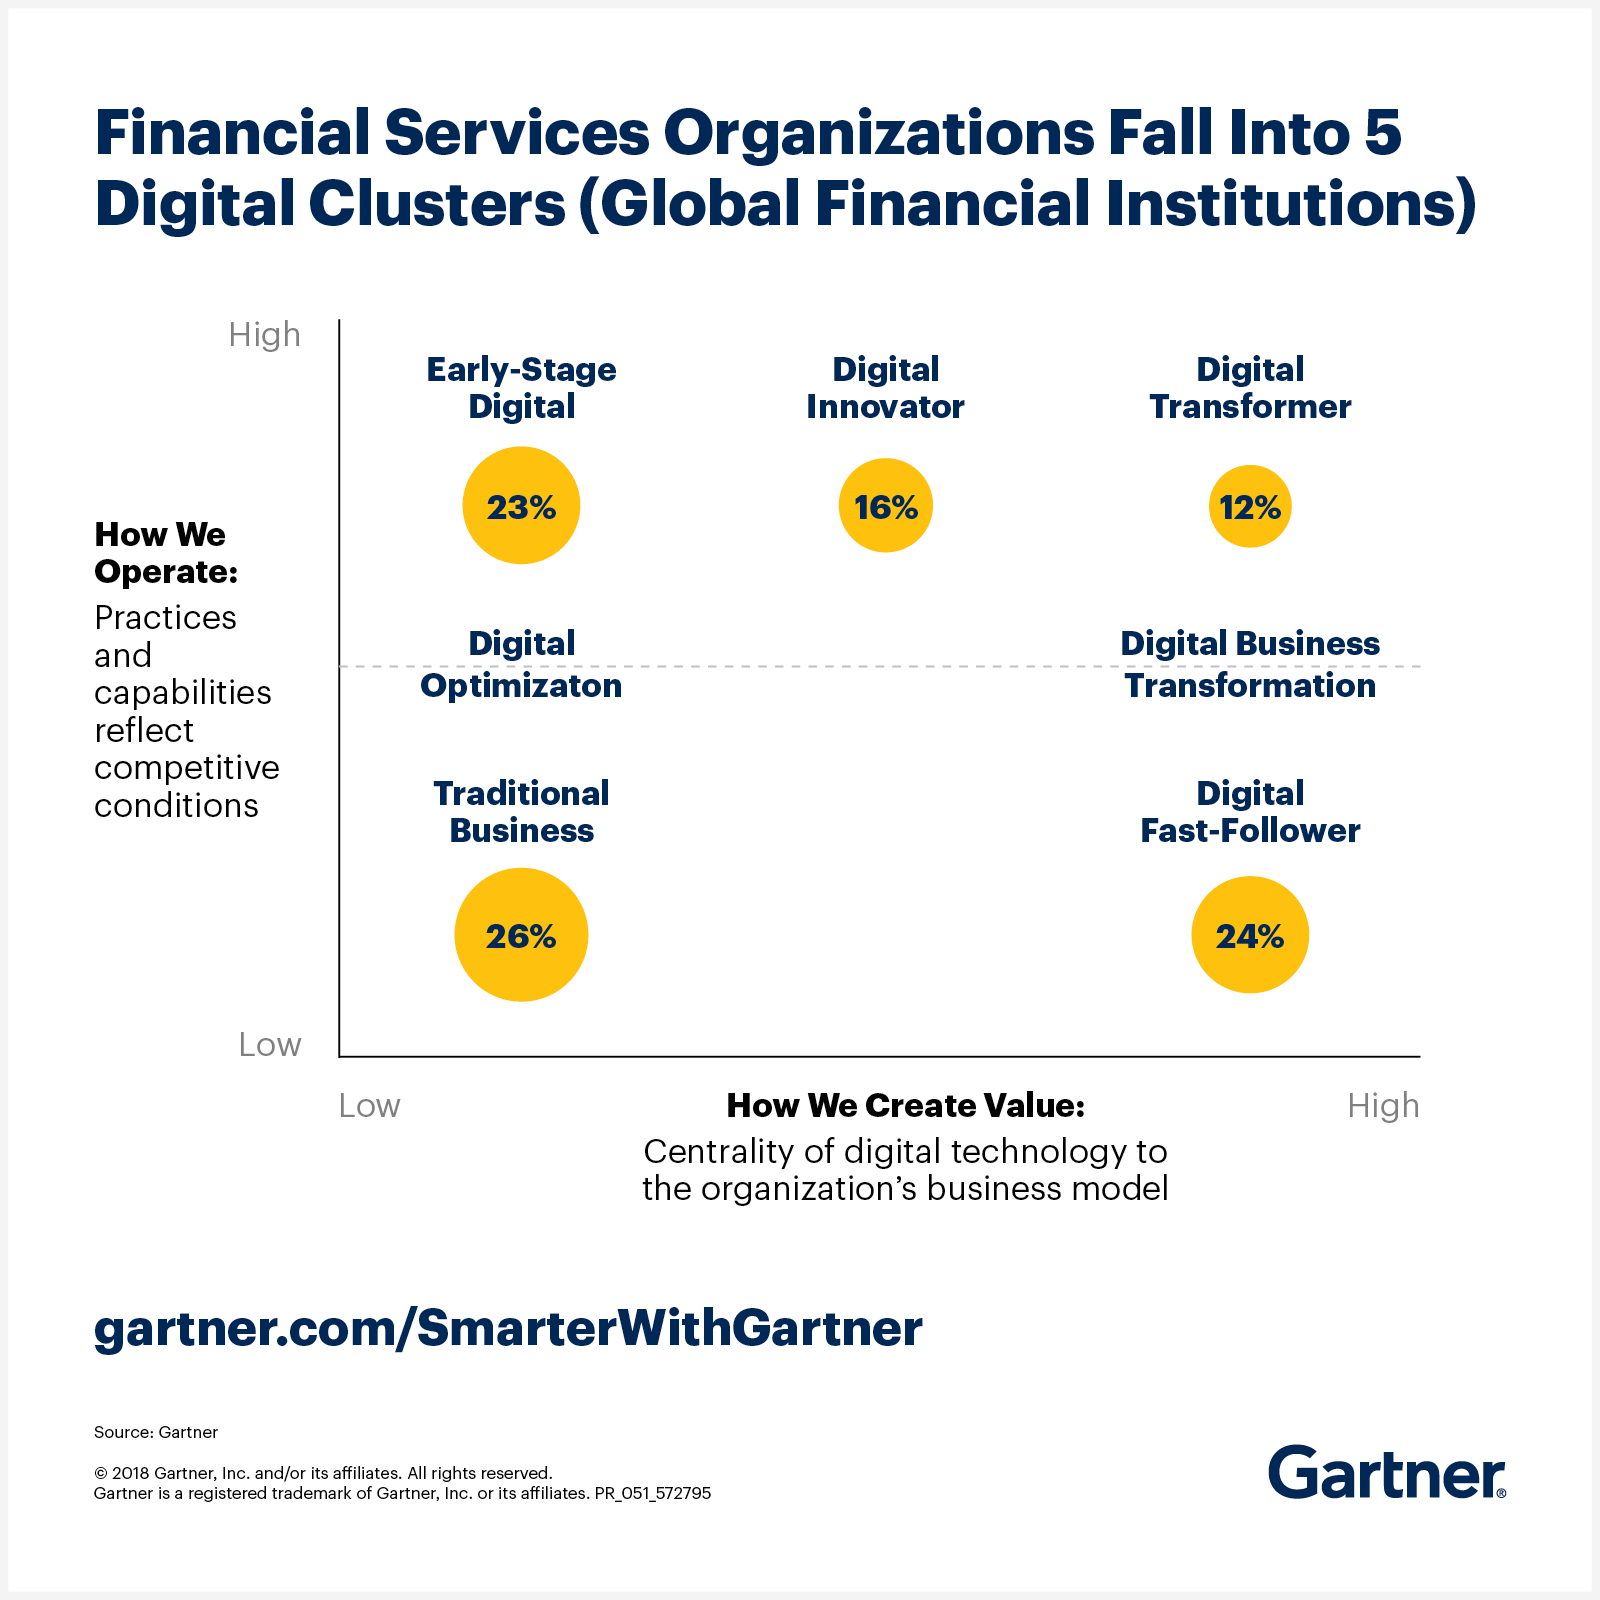 Gartner outlines the five digital clusters in which financial services organizations fall.